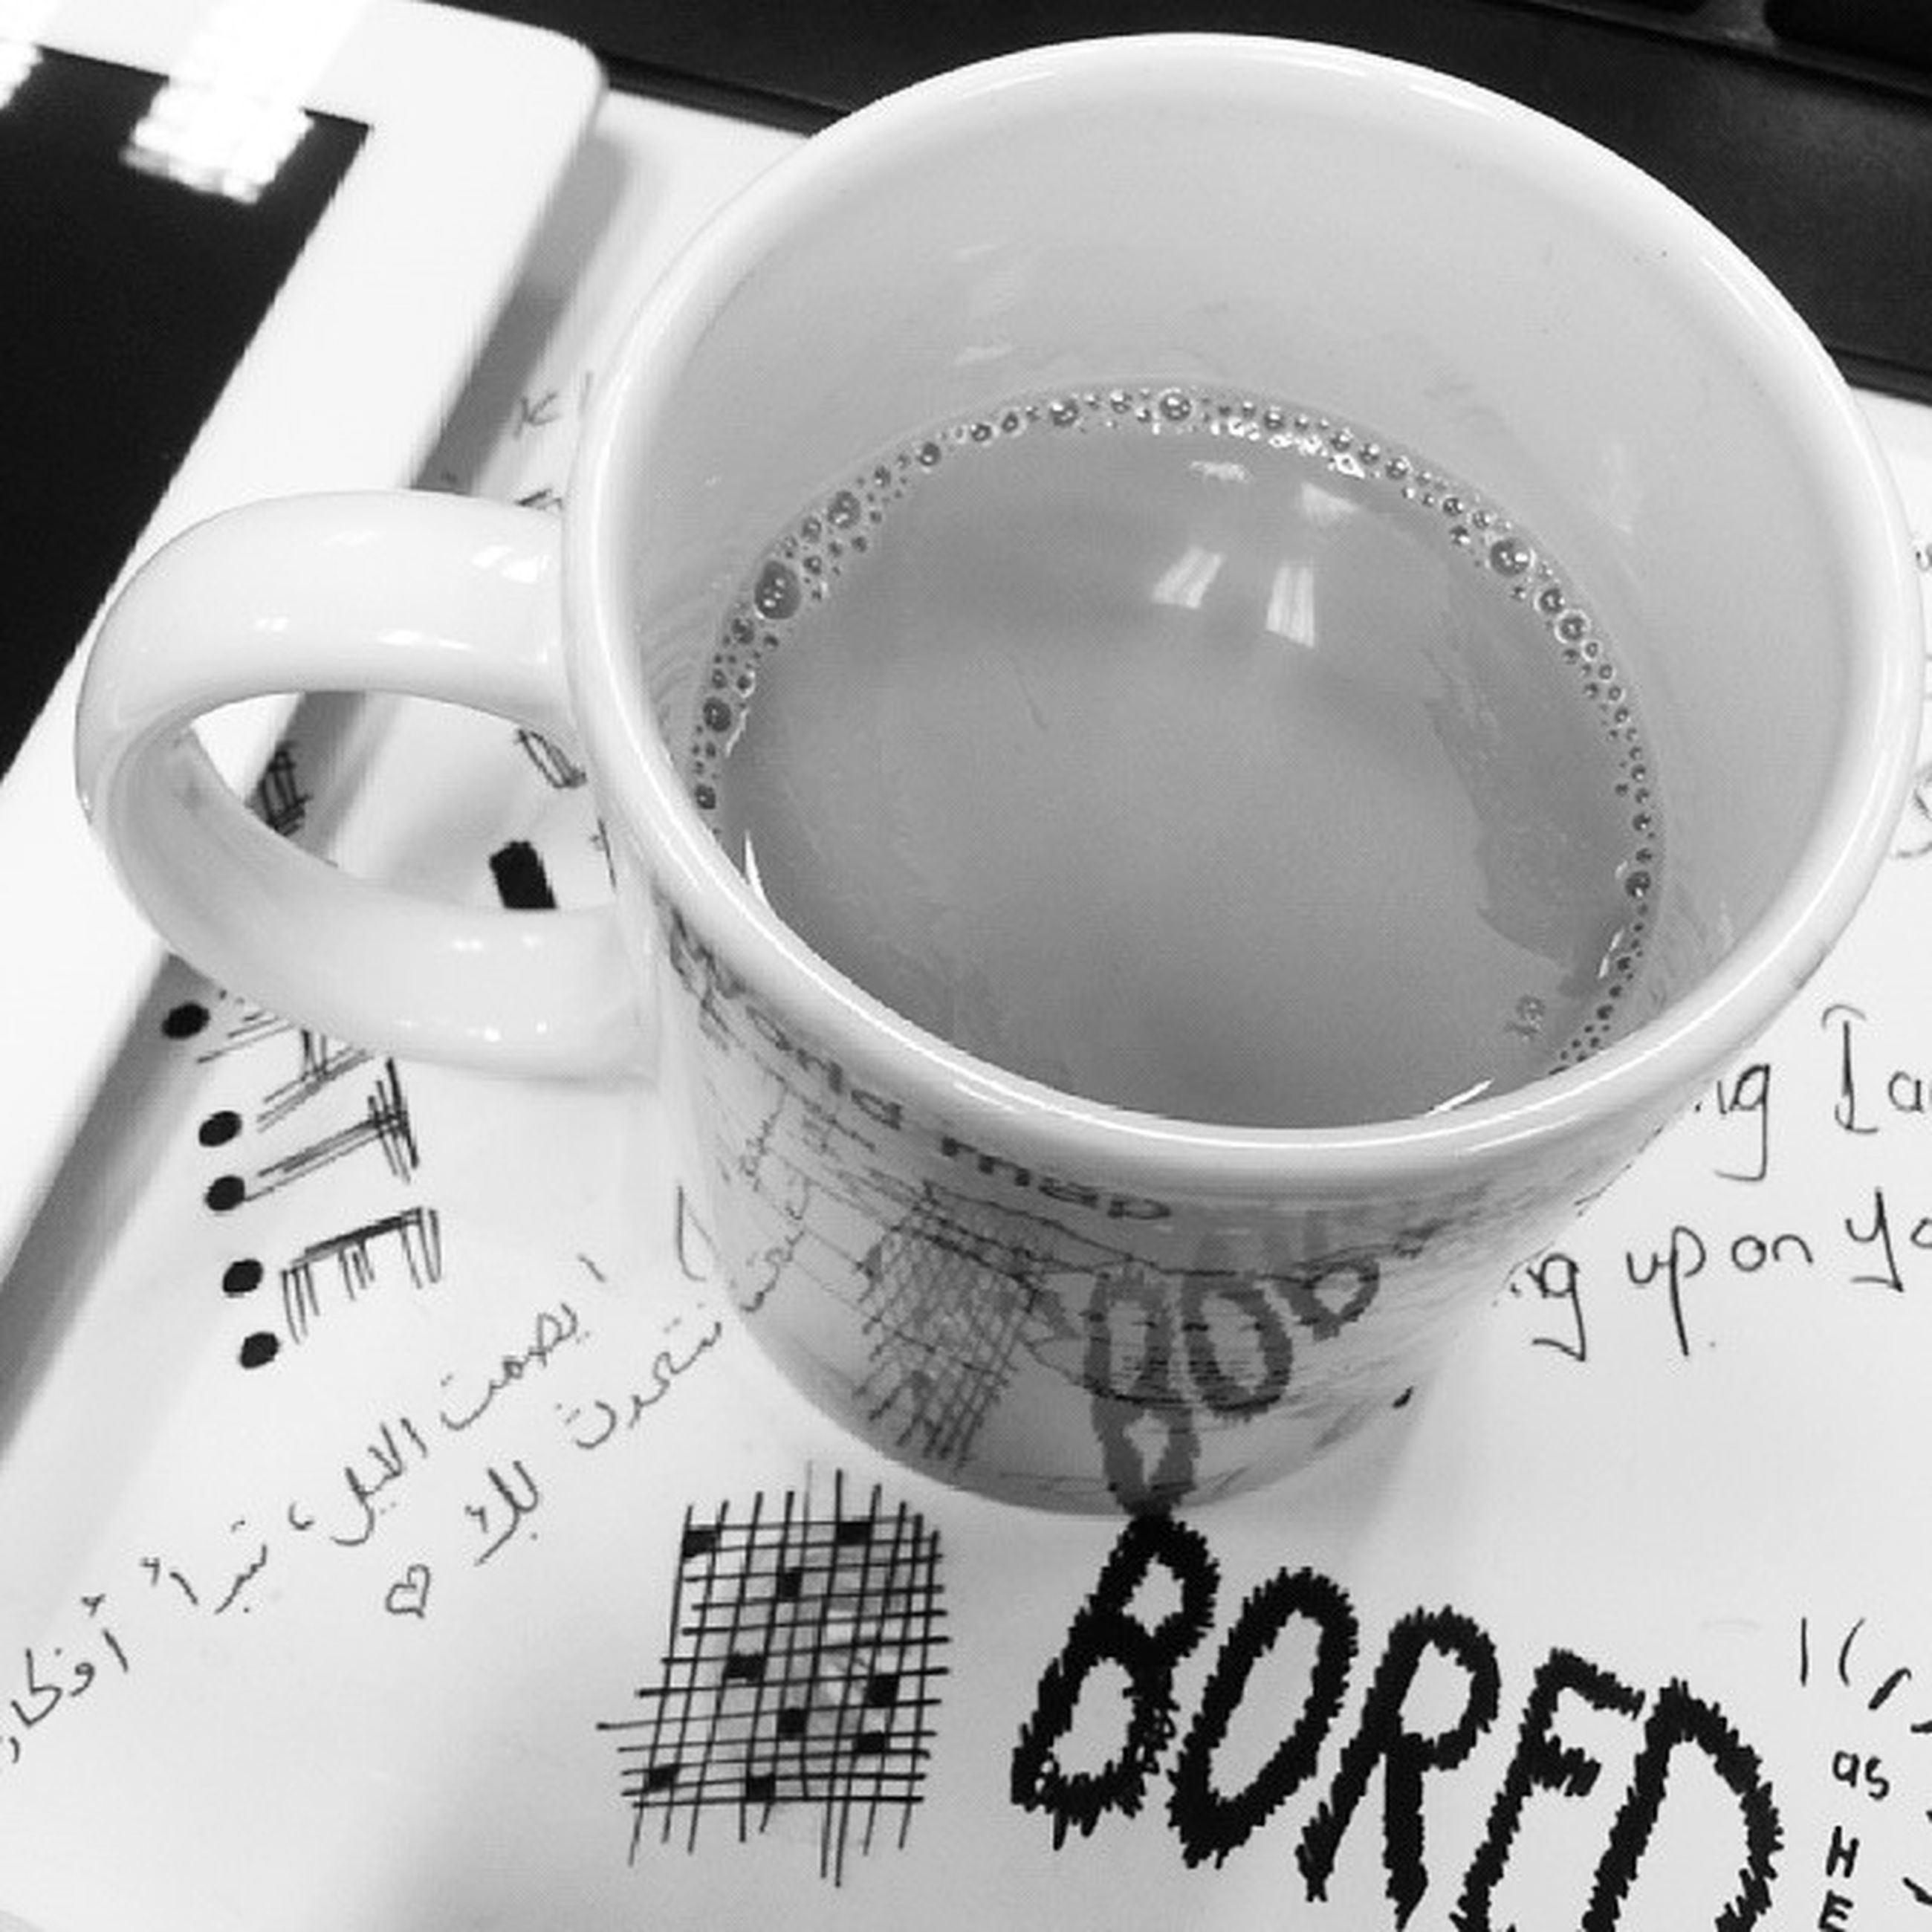 indoors, text, western script, communication, still life, close-up, table, coffee cup, paper, book, no people, education, drink, high angle view, technology, refreshment, number, studio shot, coffee - drink, selective focus